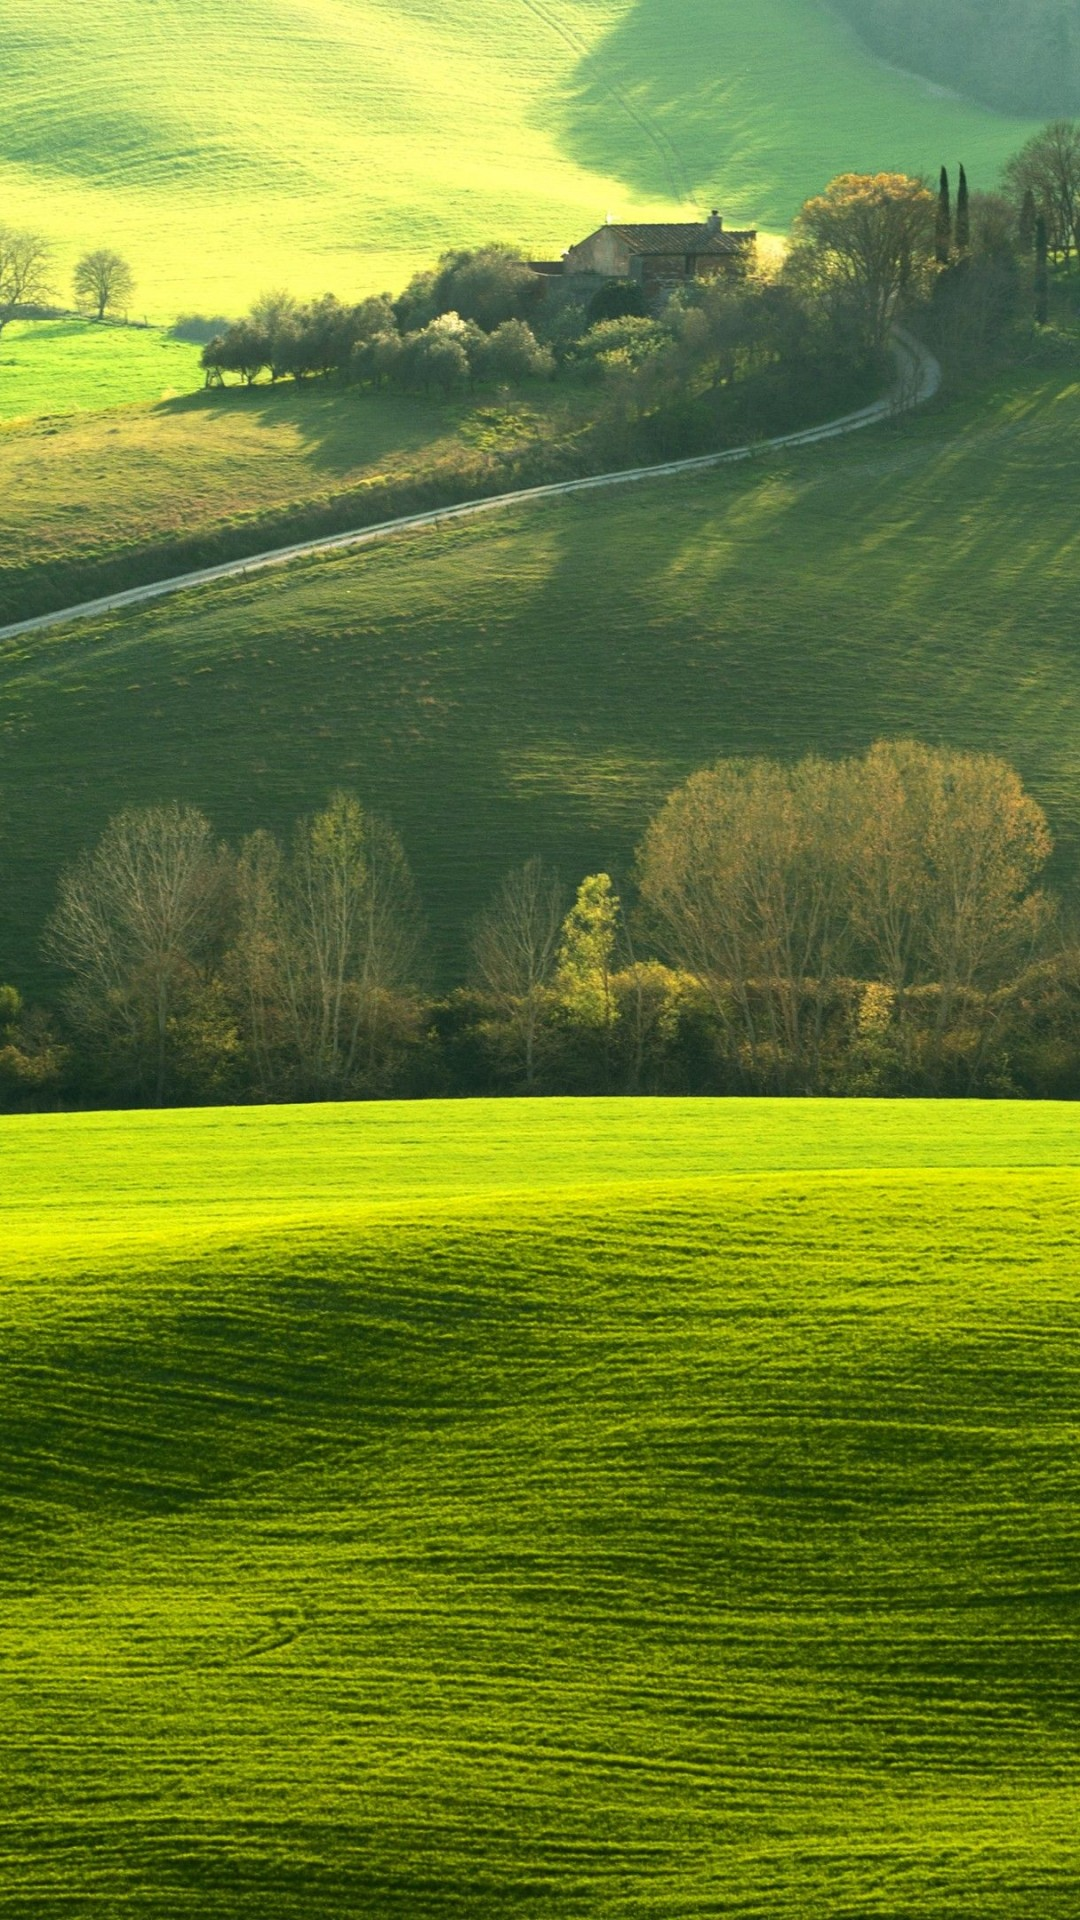 Wallpaper Tuscany Italy Europe Hills Green Field 4k